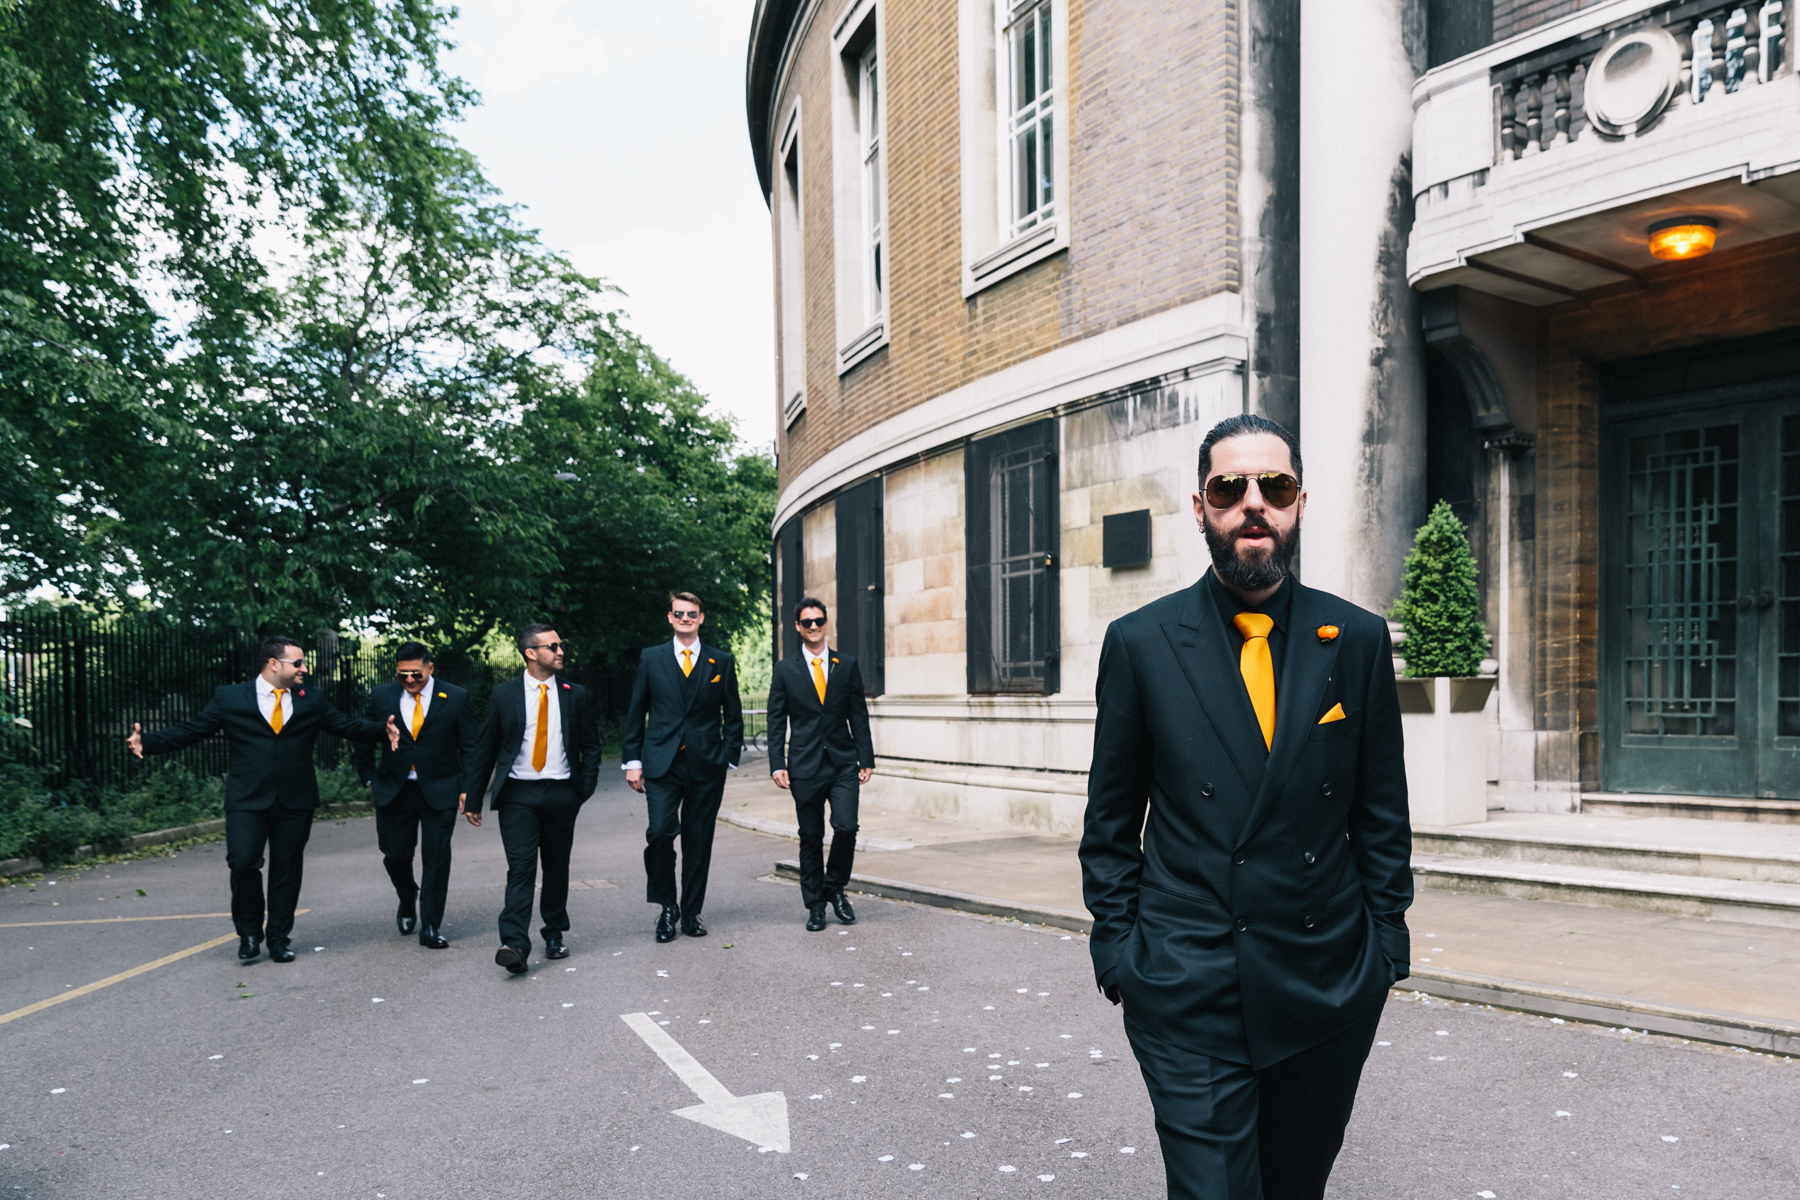 STOKE NEWINGTON TOWN HALL WEDDING-7